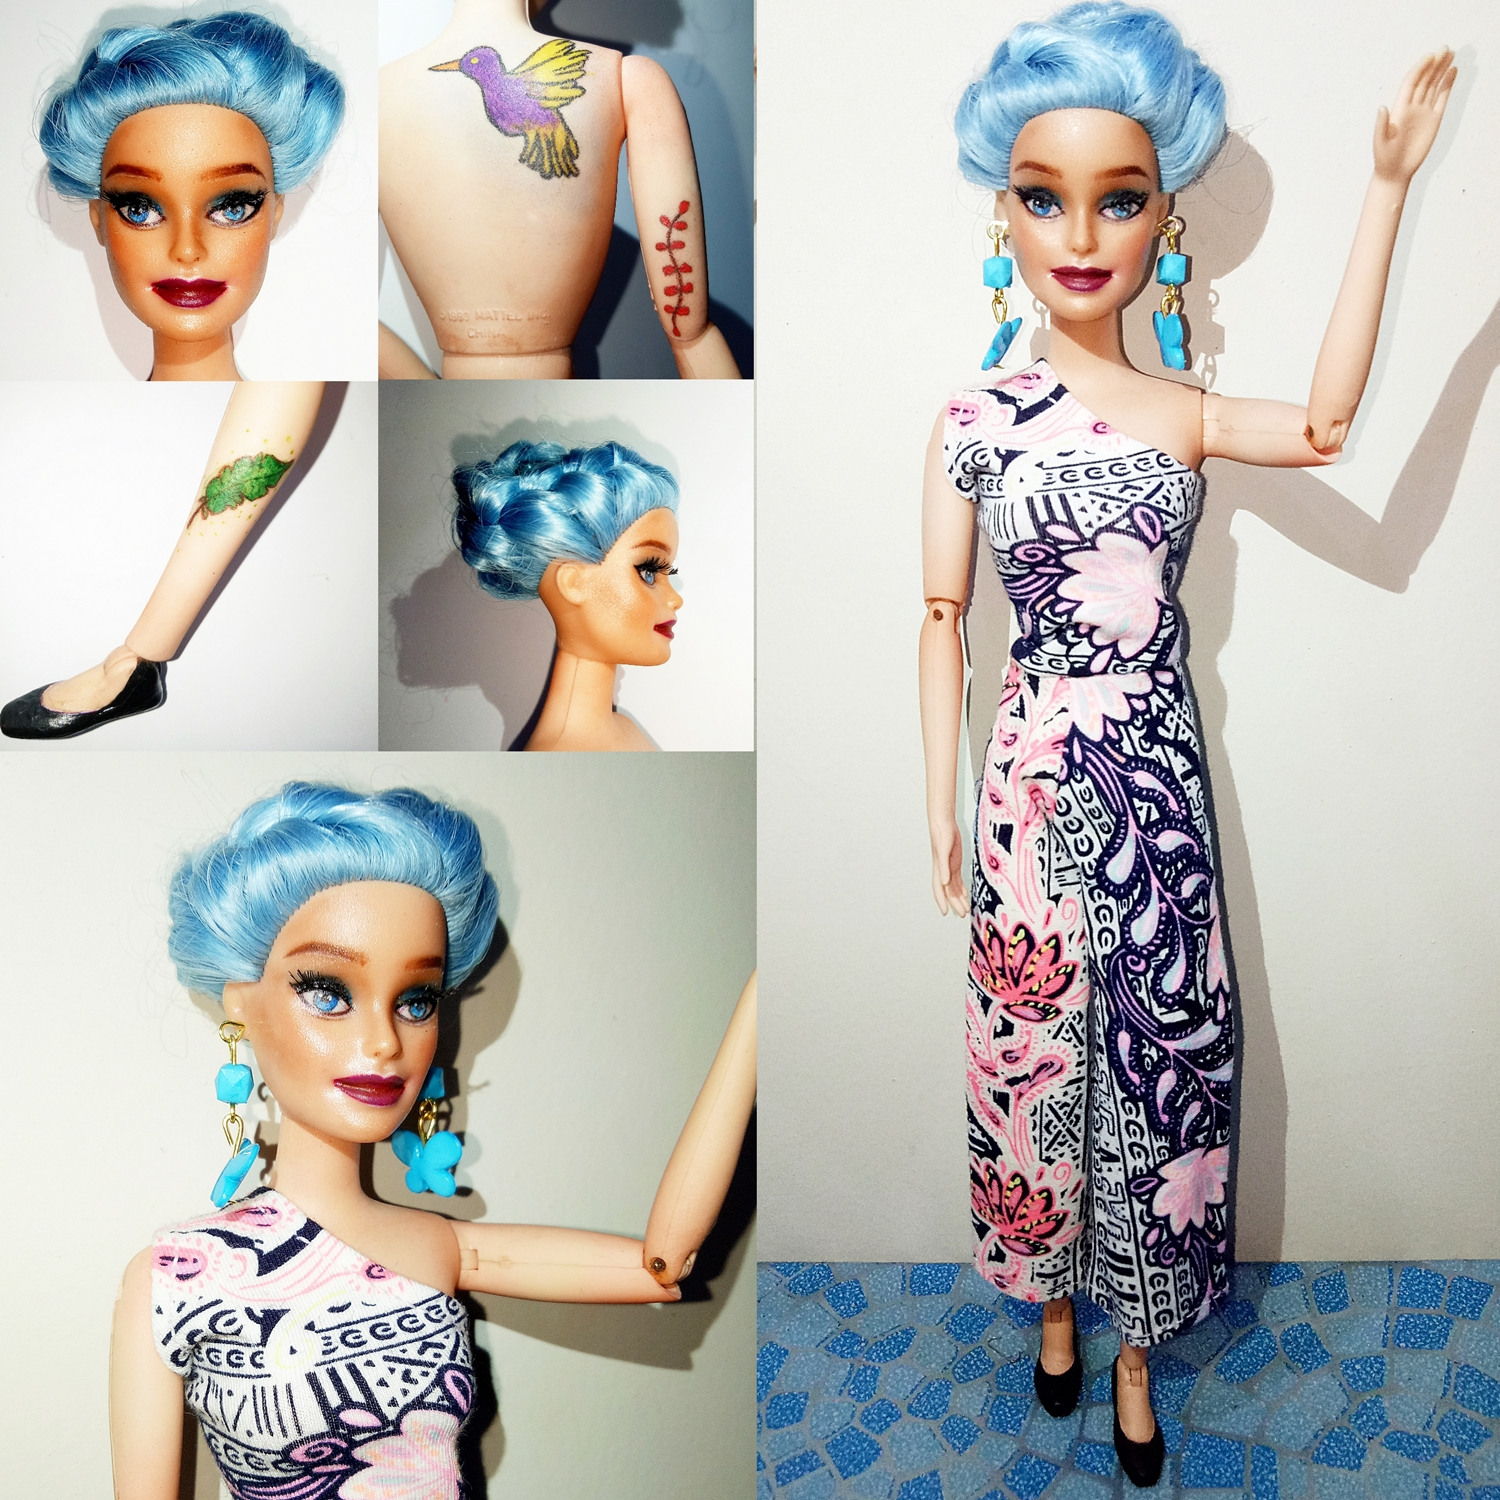 Ooak Barbie Doll Repaint Twist And Turn Body And Blue Hair By Kfm Barbierobertsstuff Online Store Powered By Storenvy